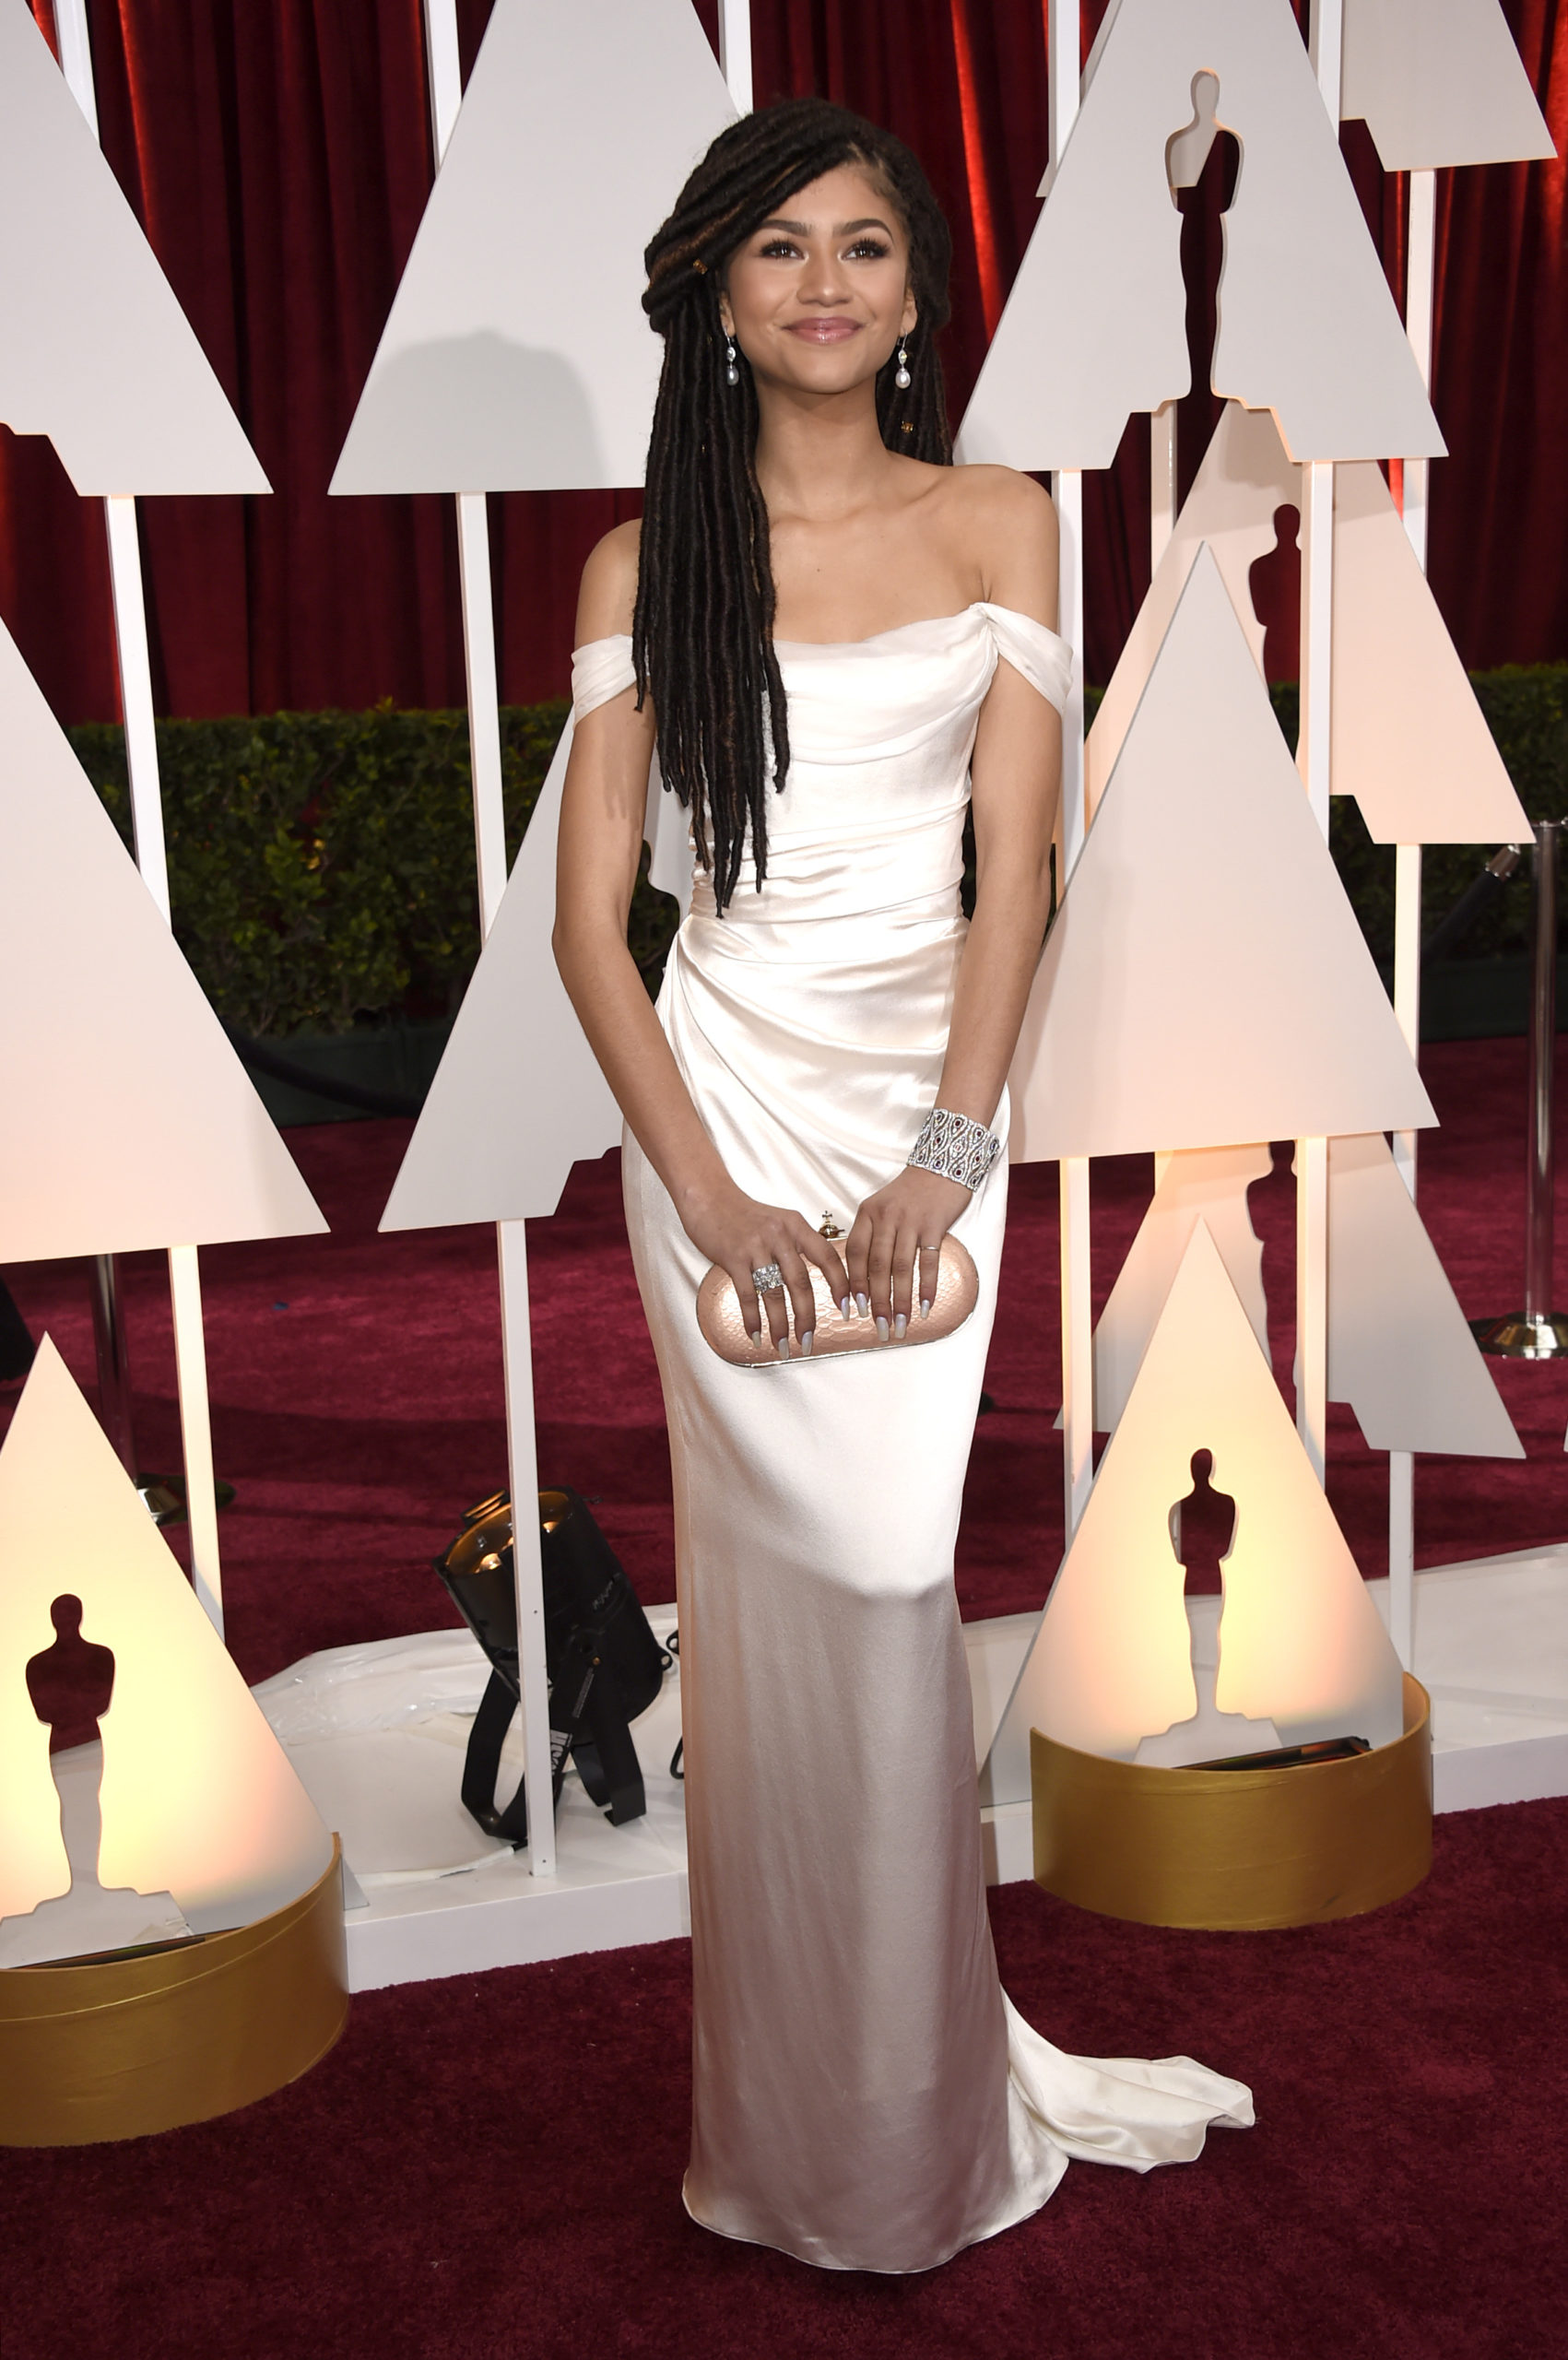 Zendaya in Vivienne Westwood at the 2015 Oscars (Photo: Getty Images)